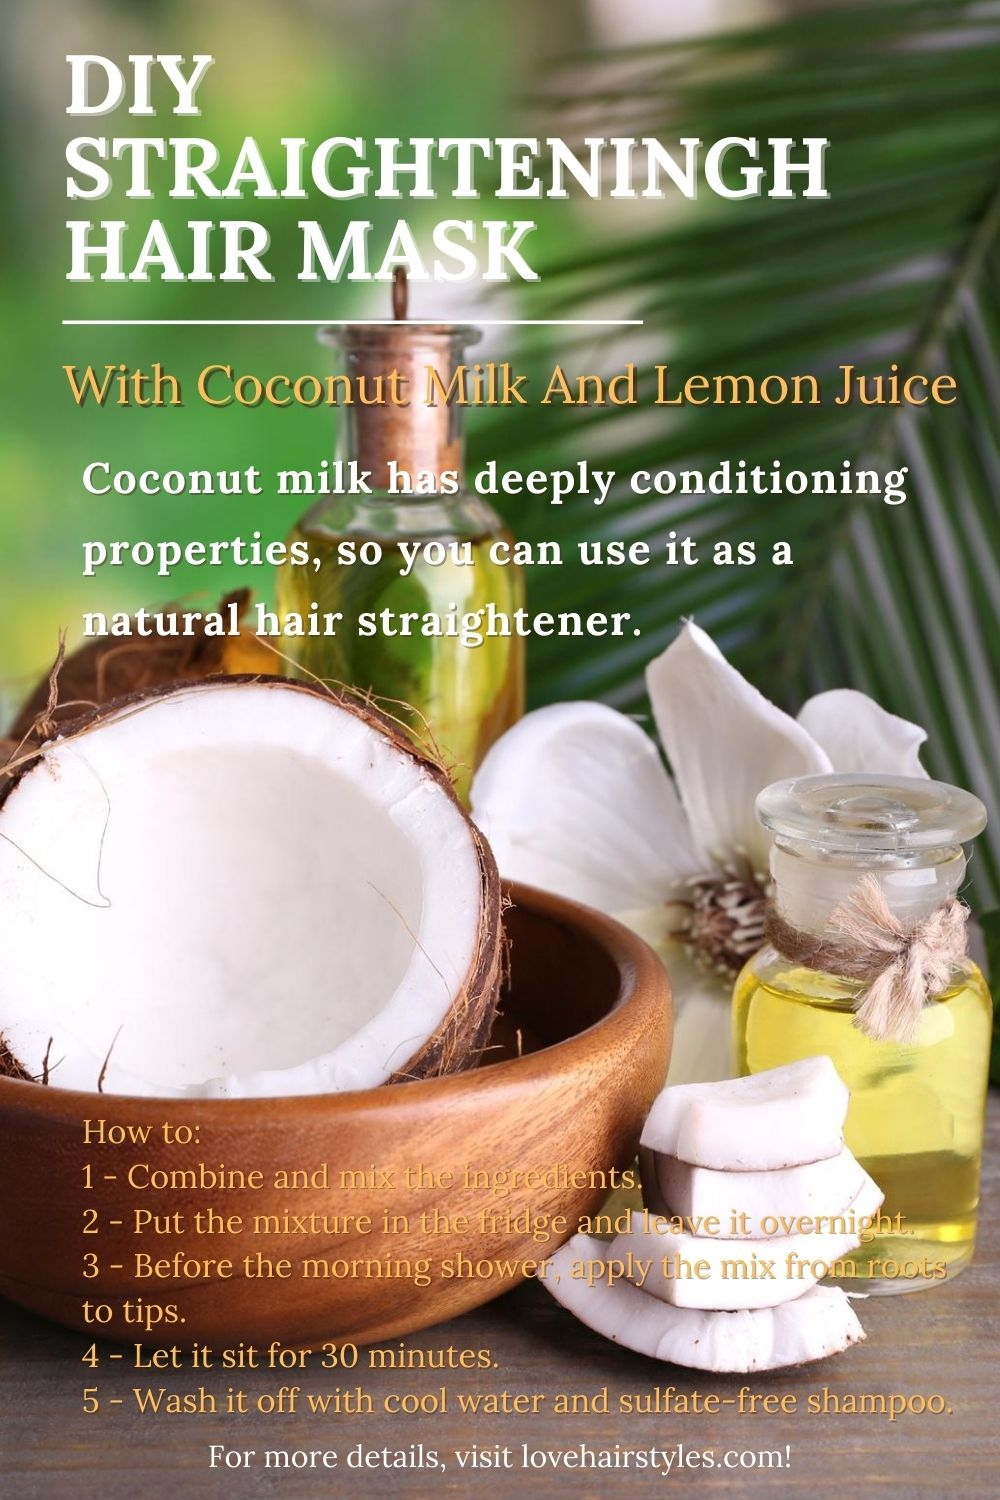 DIY: Straightening Mask With Coconut Milk And Lemon Juice